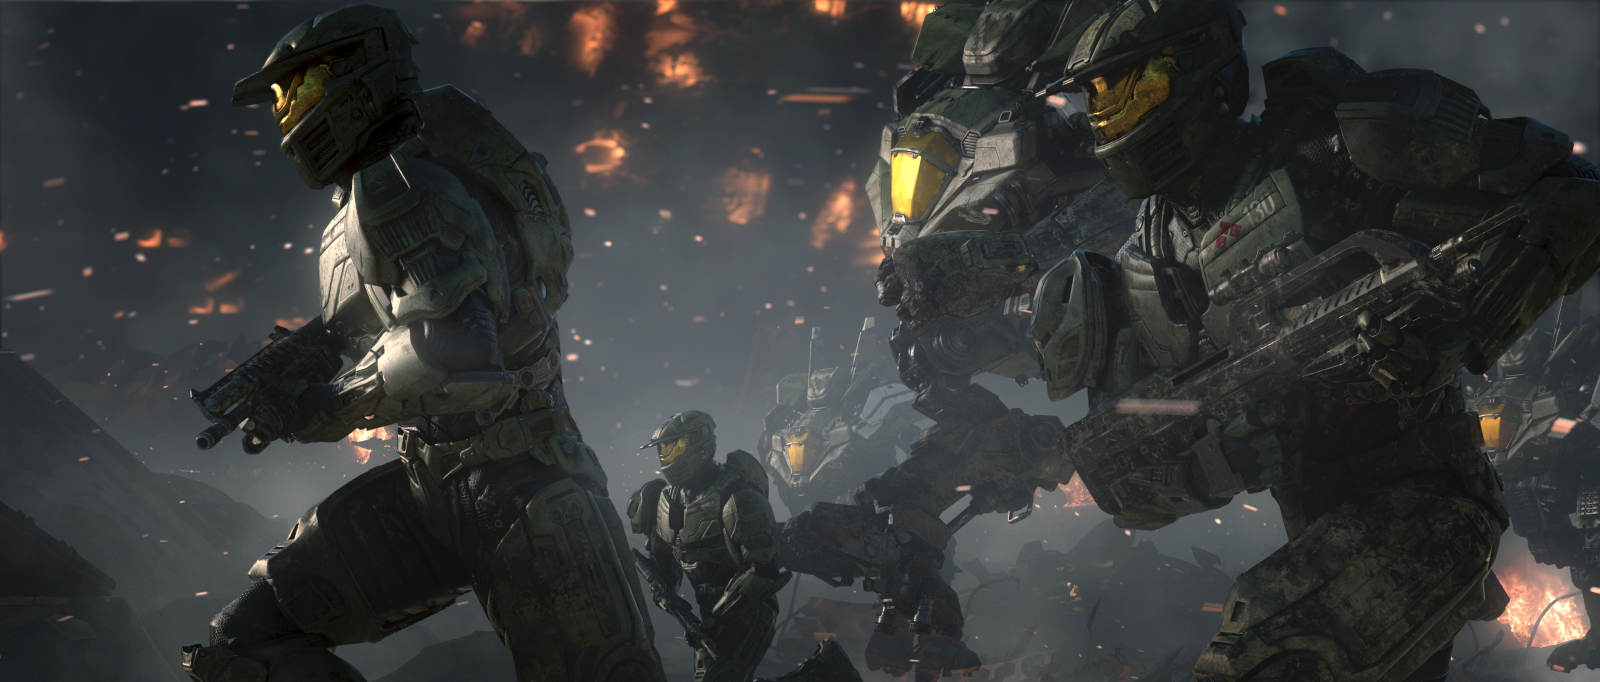 Halo Wars 2 spartans